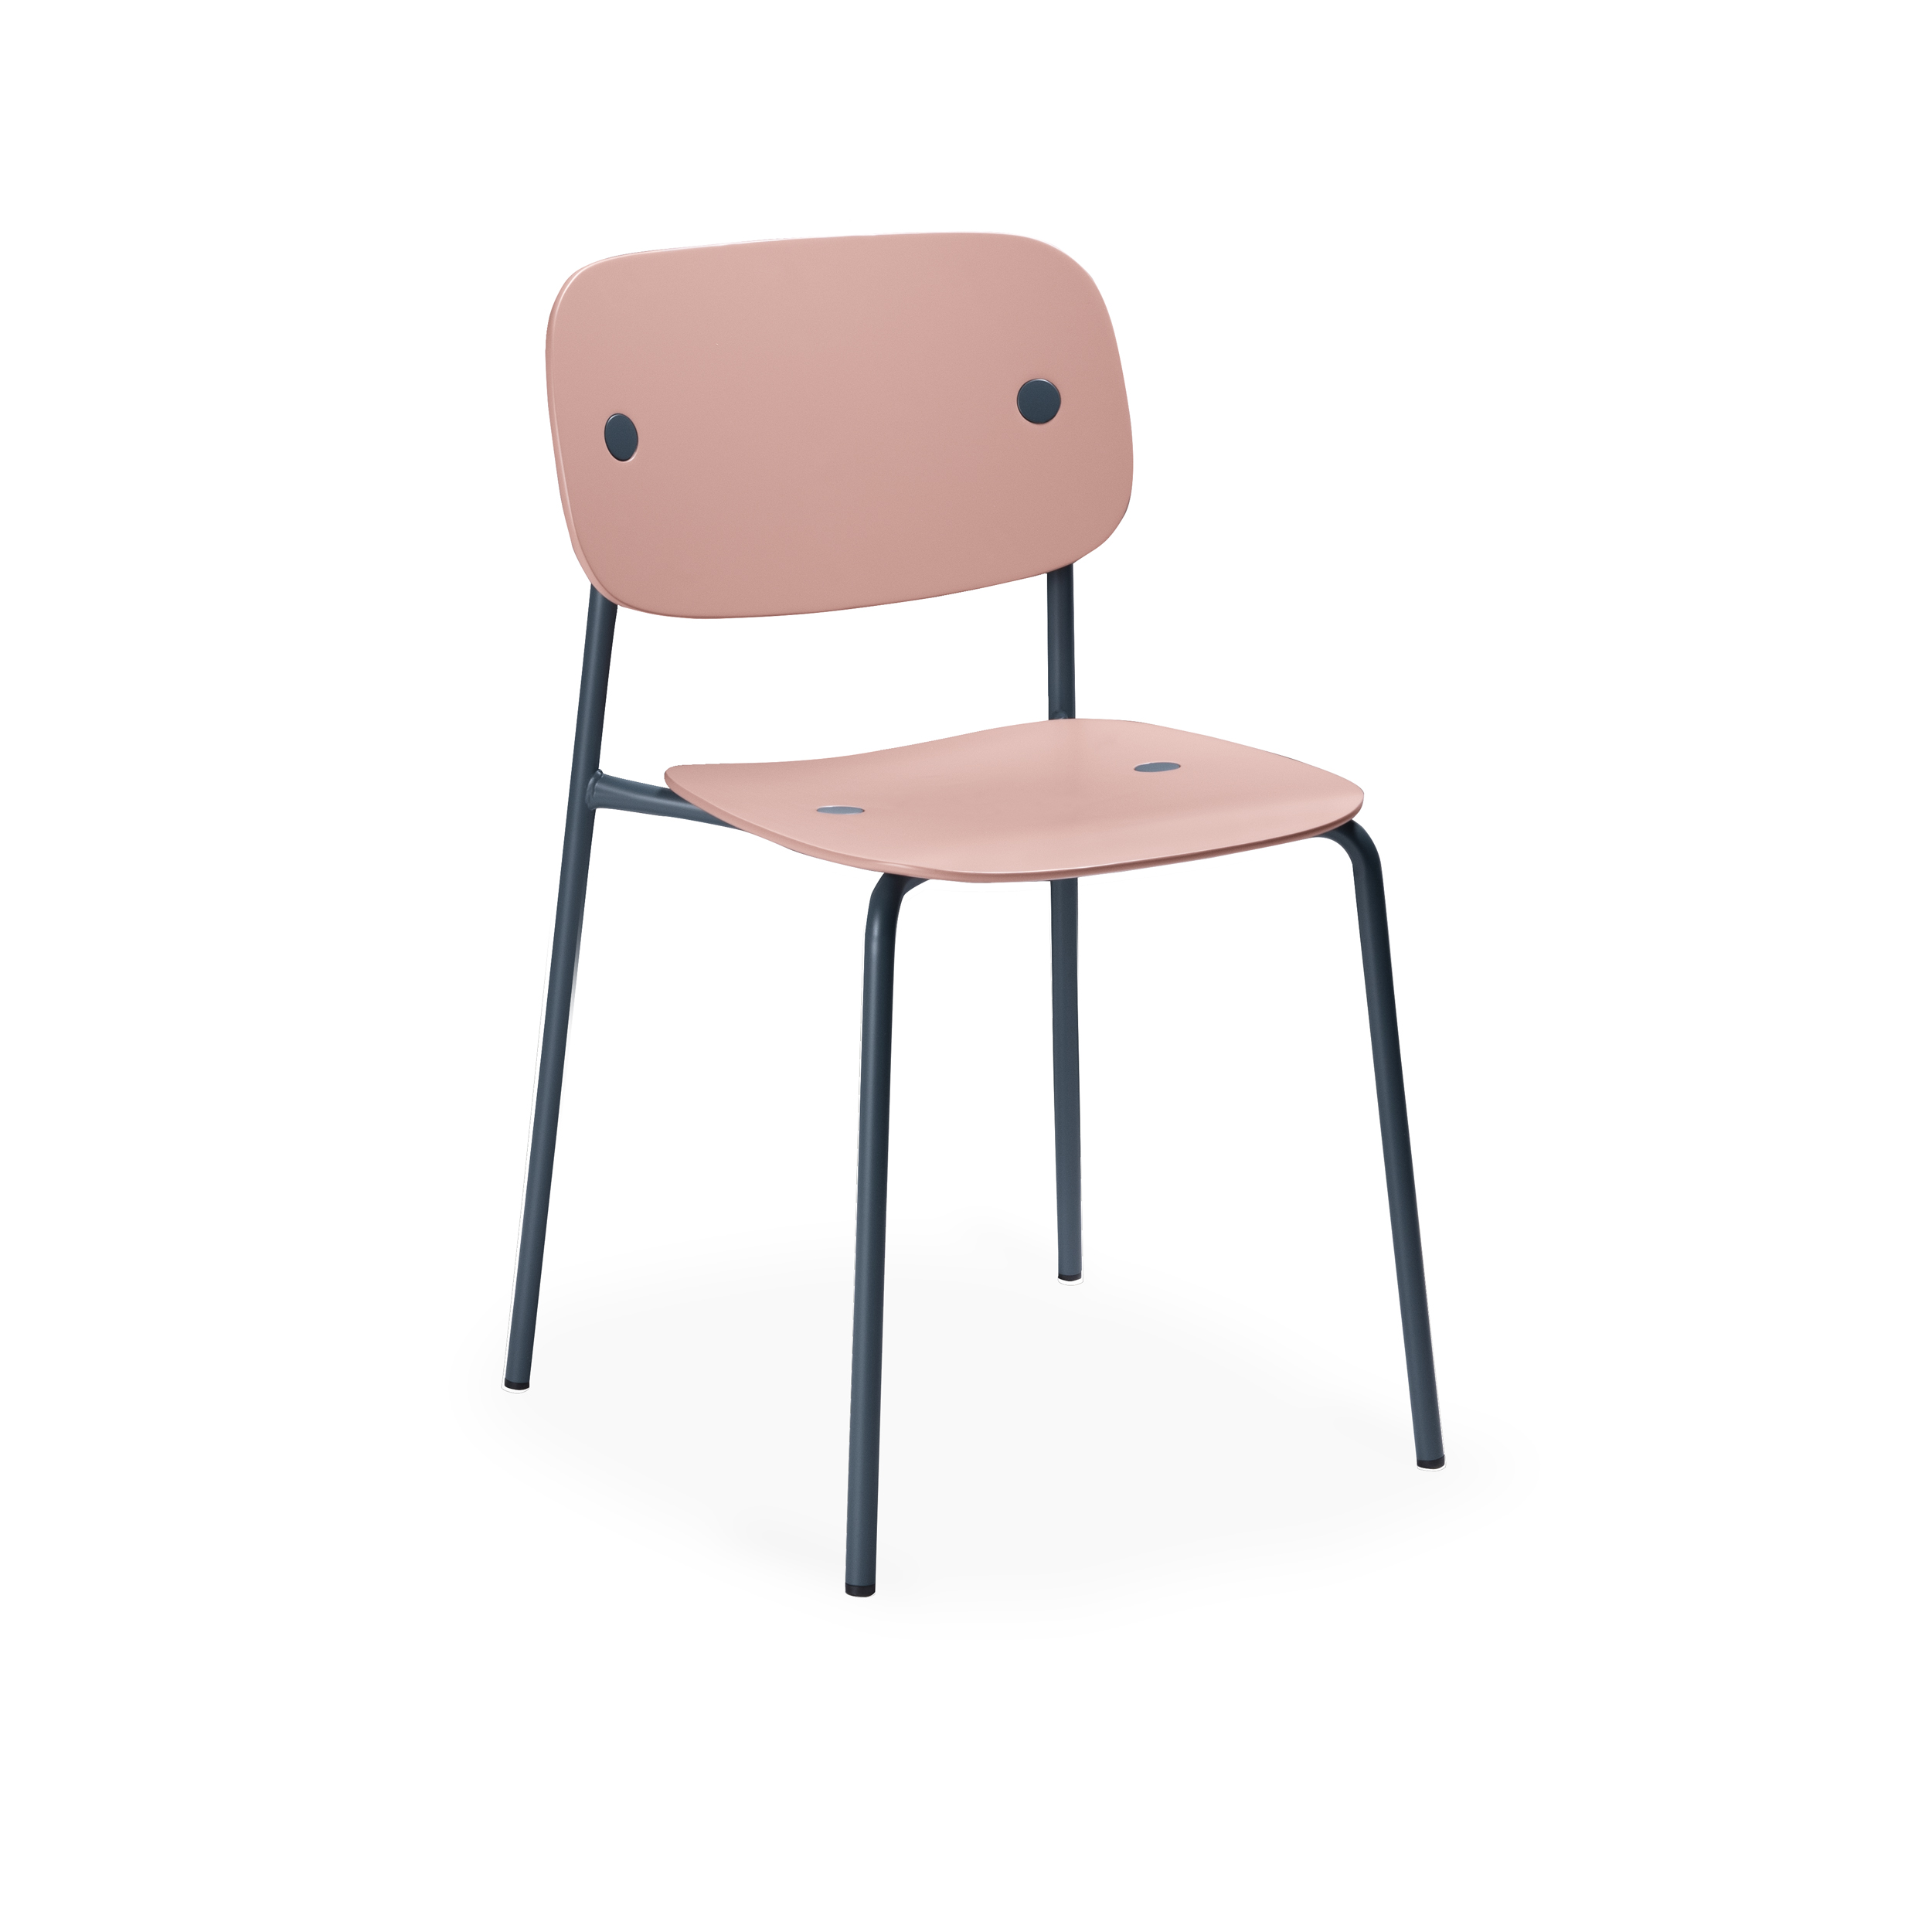 MATERIA-Anagram-chair-pink-blue-front.jpg